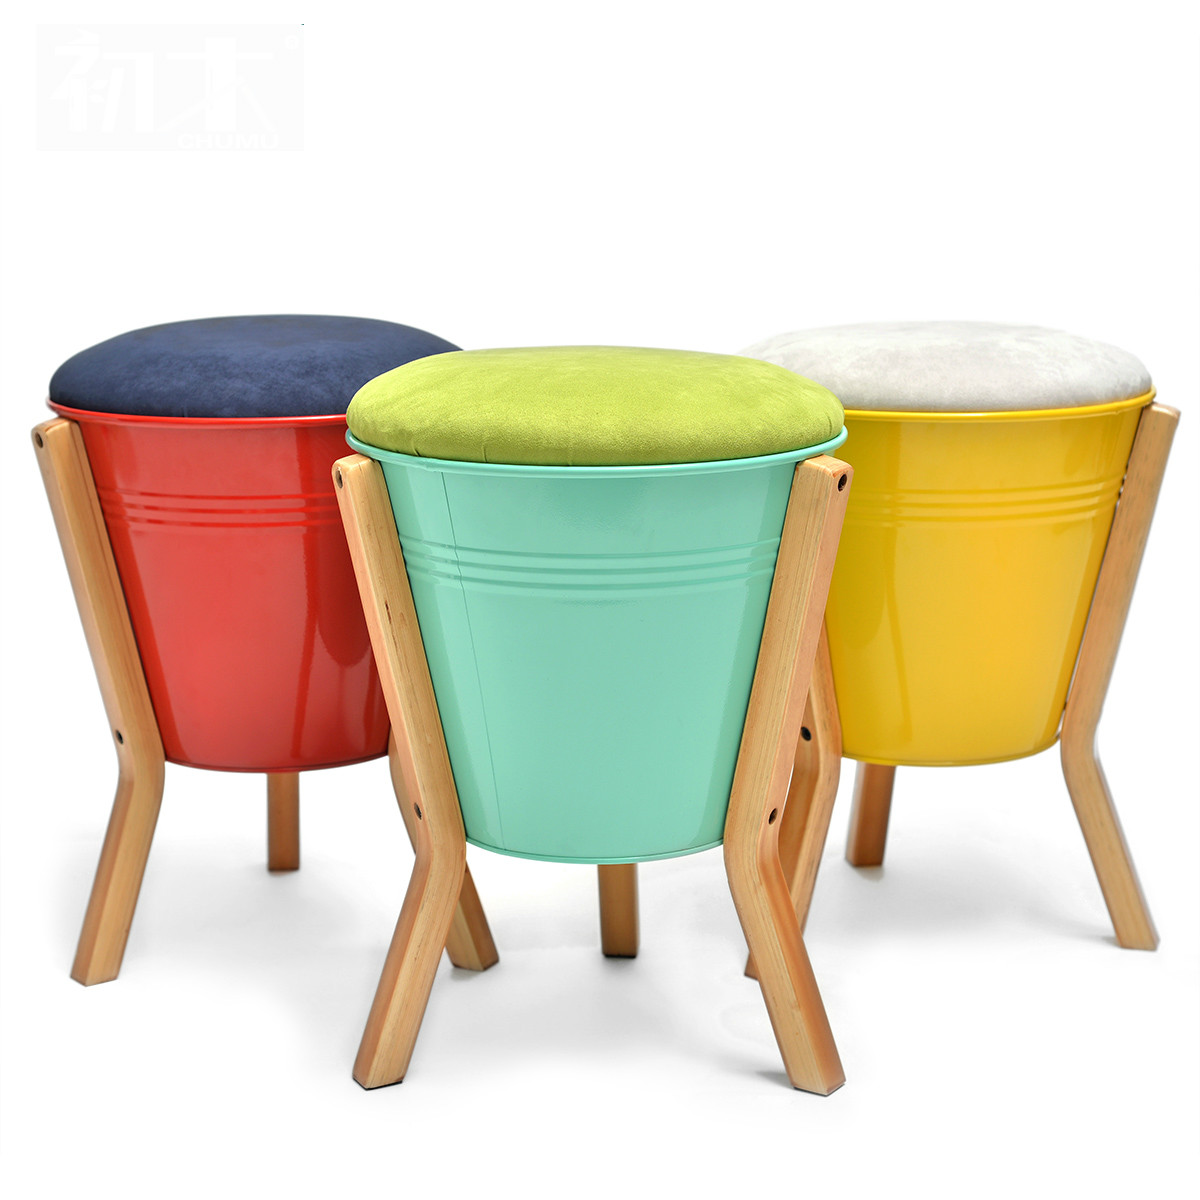 High Quality Practical Small Home Stool Ottoman Modern